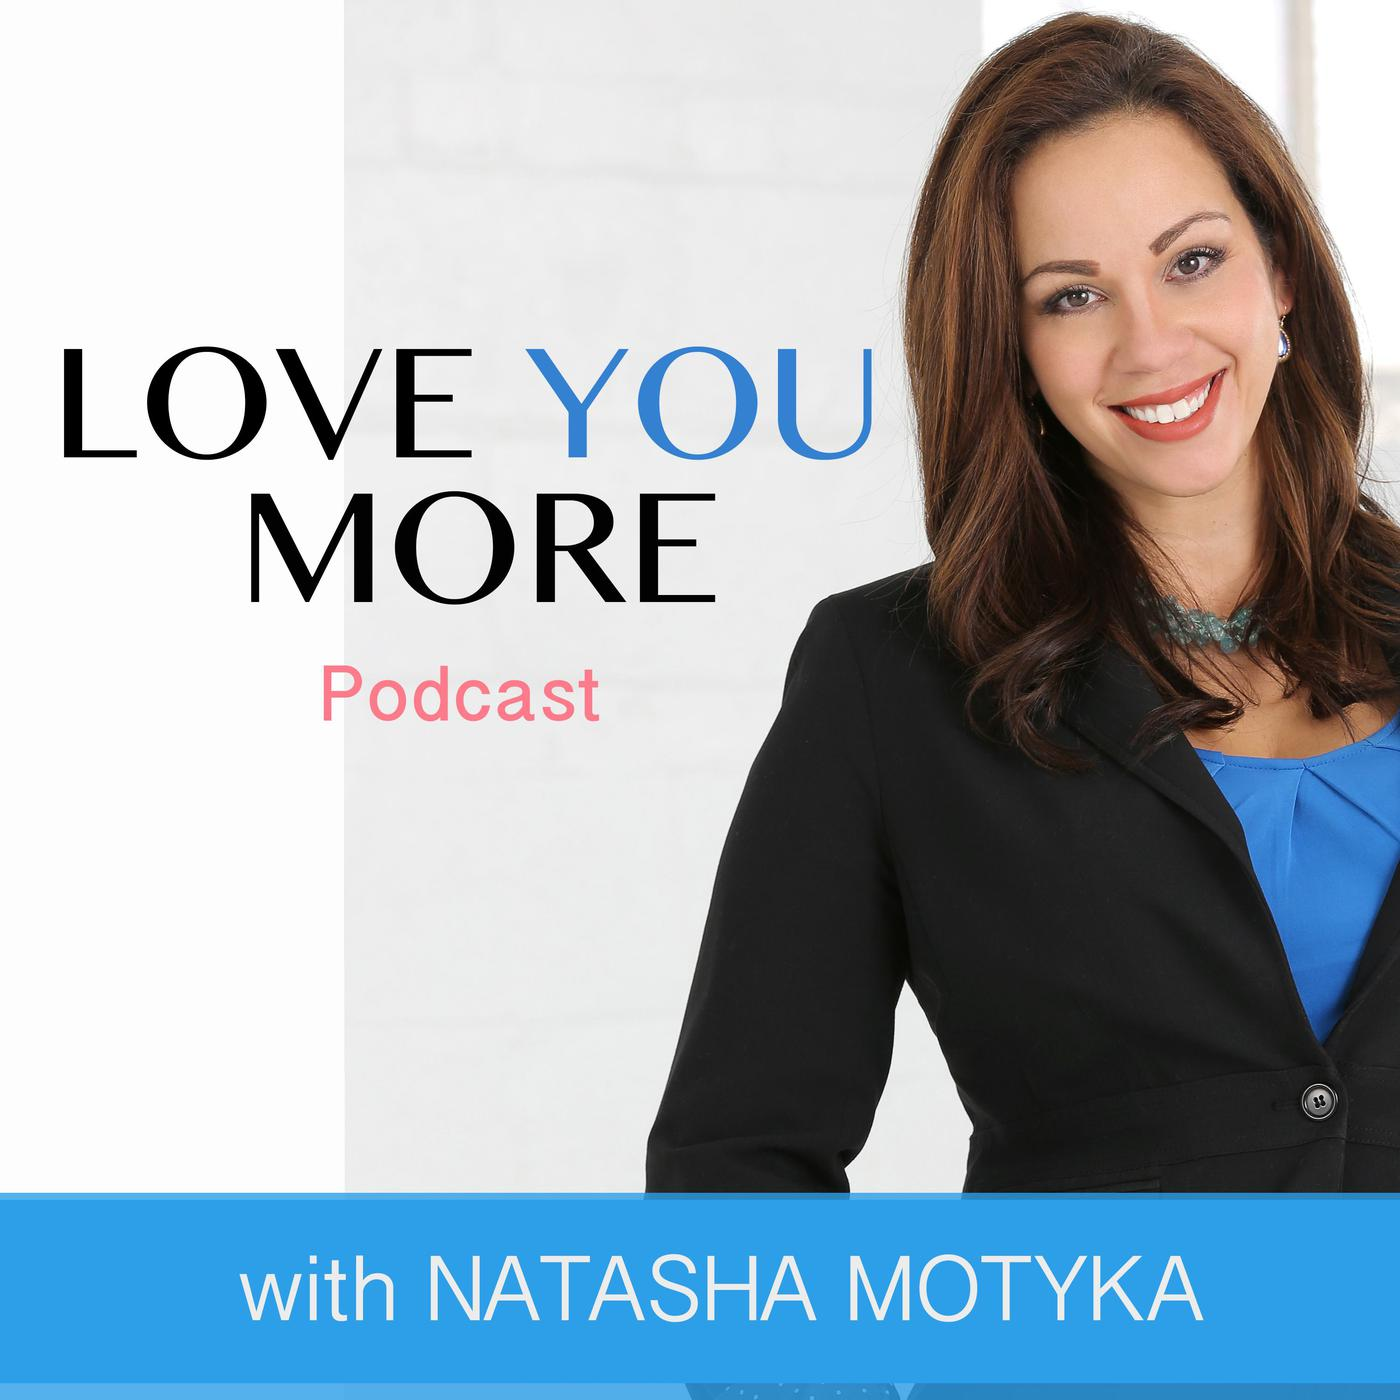 Love You More Podcast|Marriage|Relationships|Dating|Self-Love